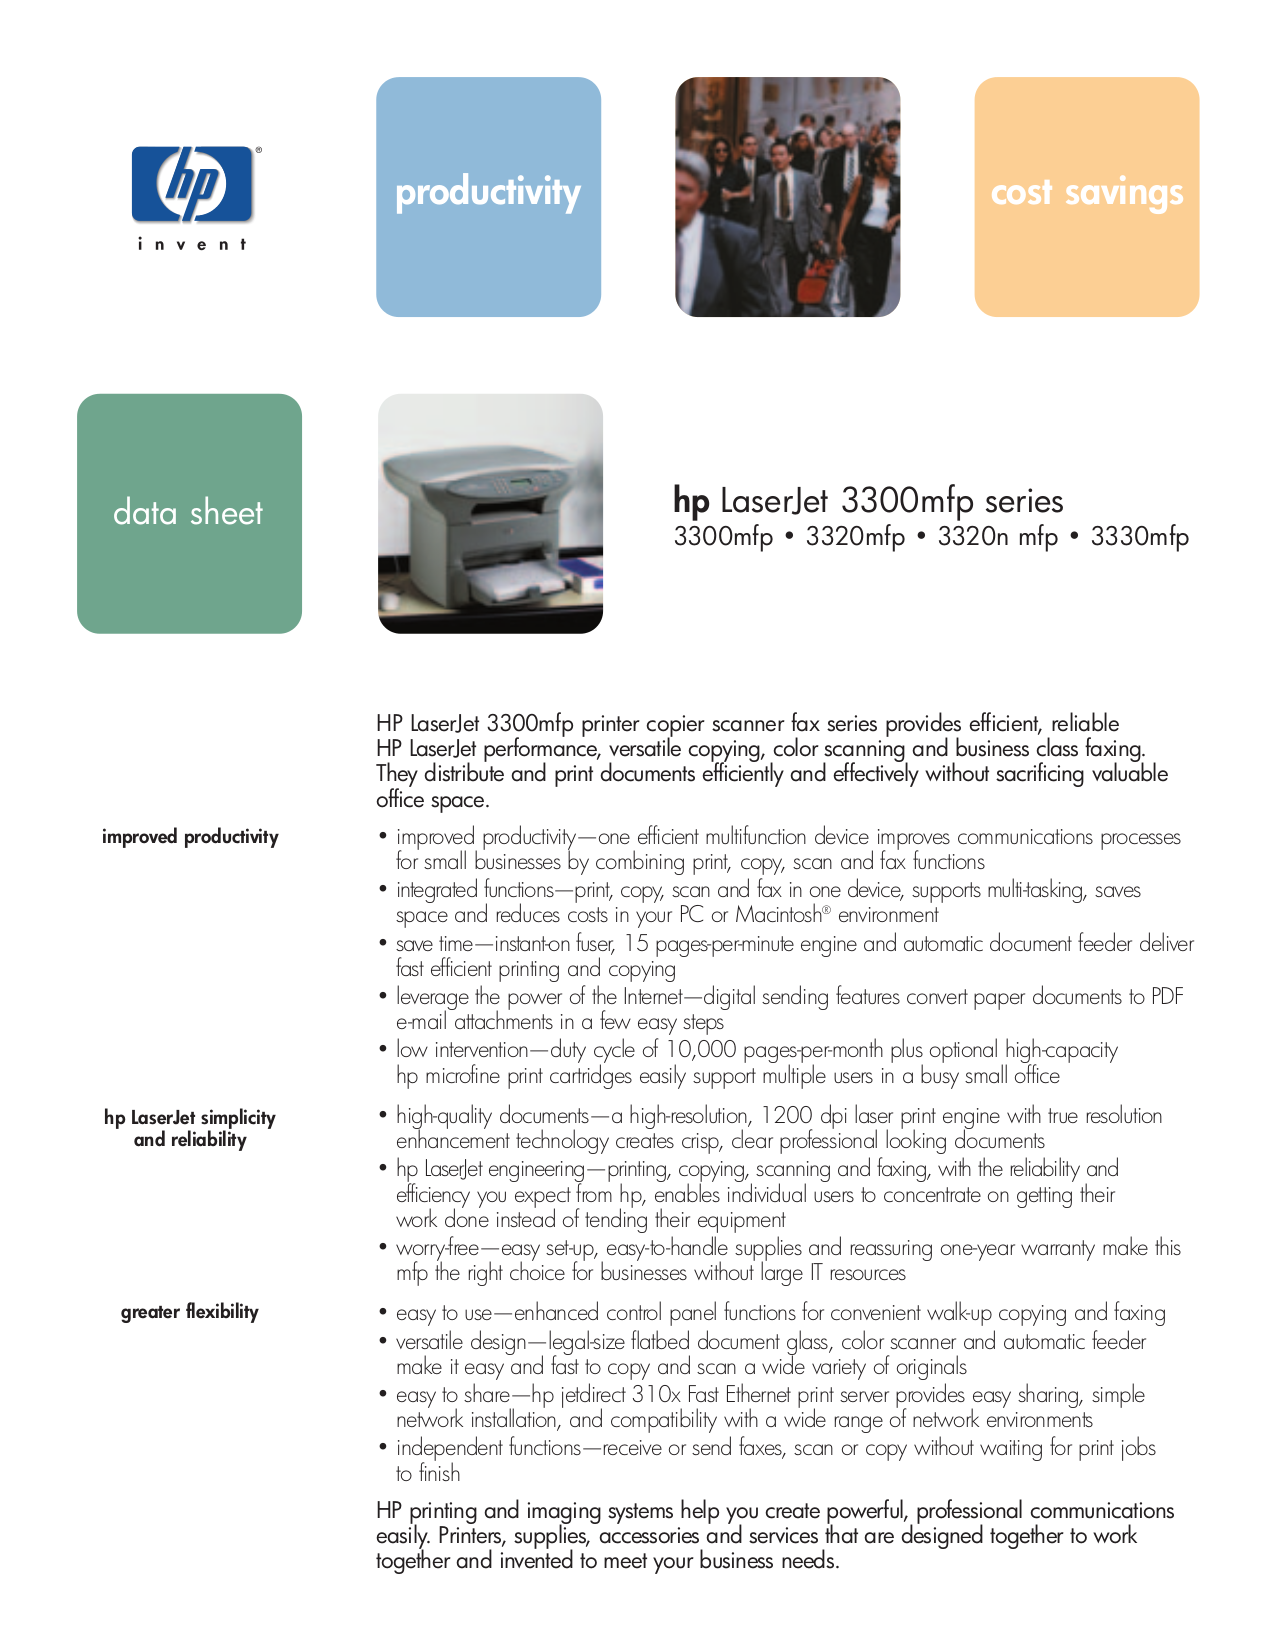 download free pdf for hp laserjet color laserjet 3330 multifunction rh umlib com HP LaserJet 3200 Toner HP LaserJet 3030